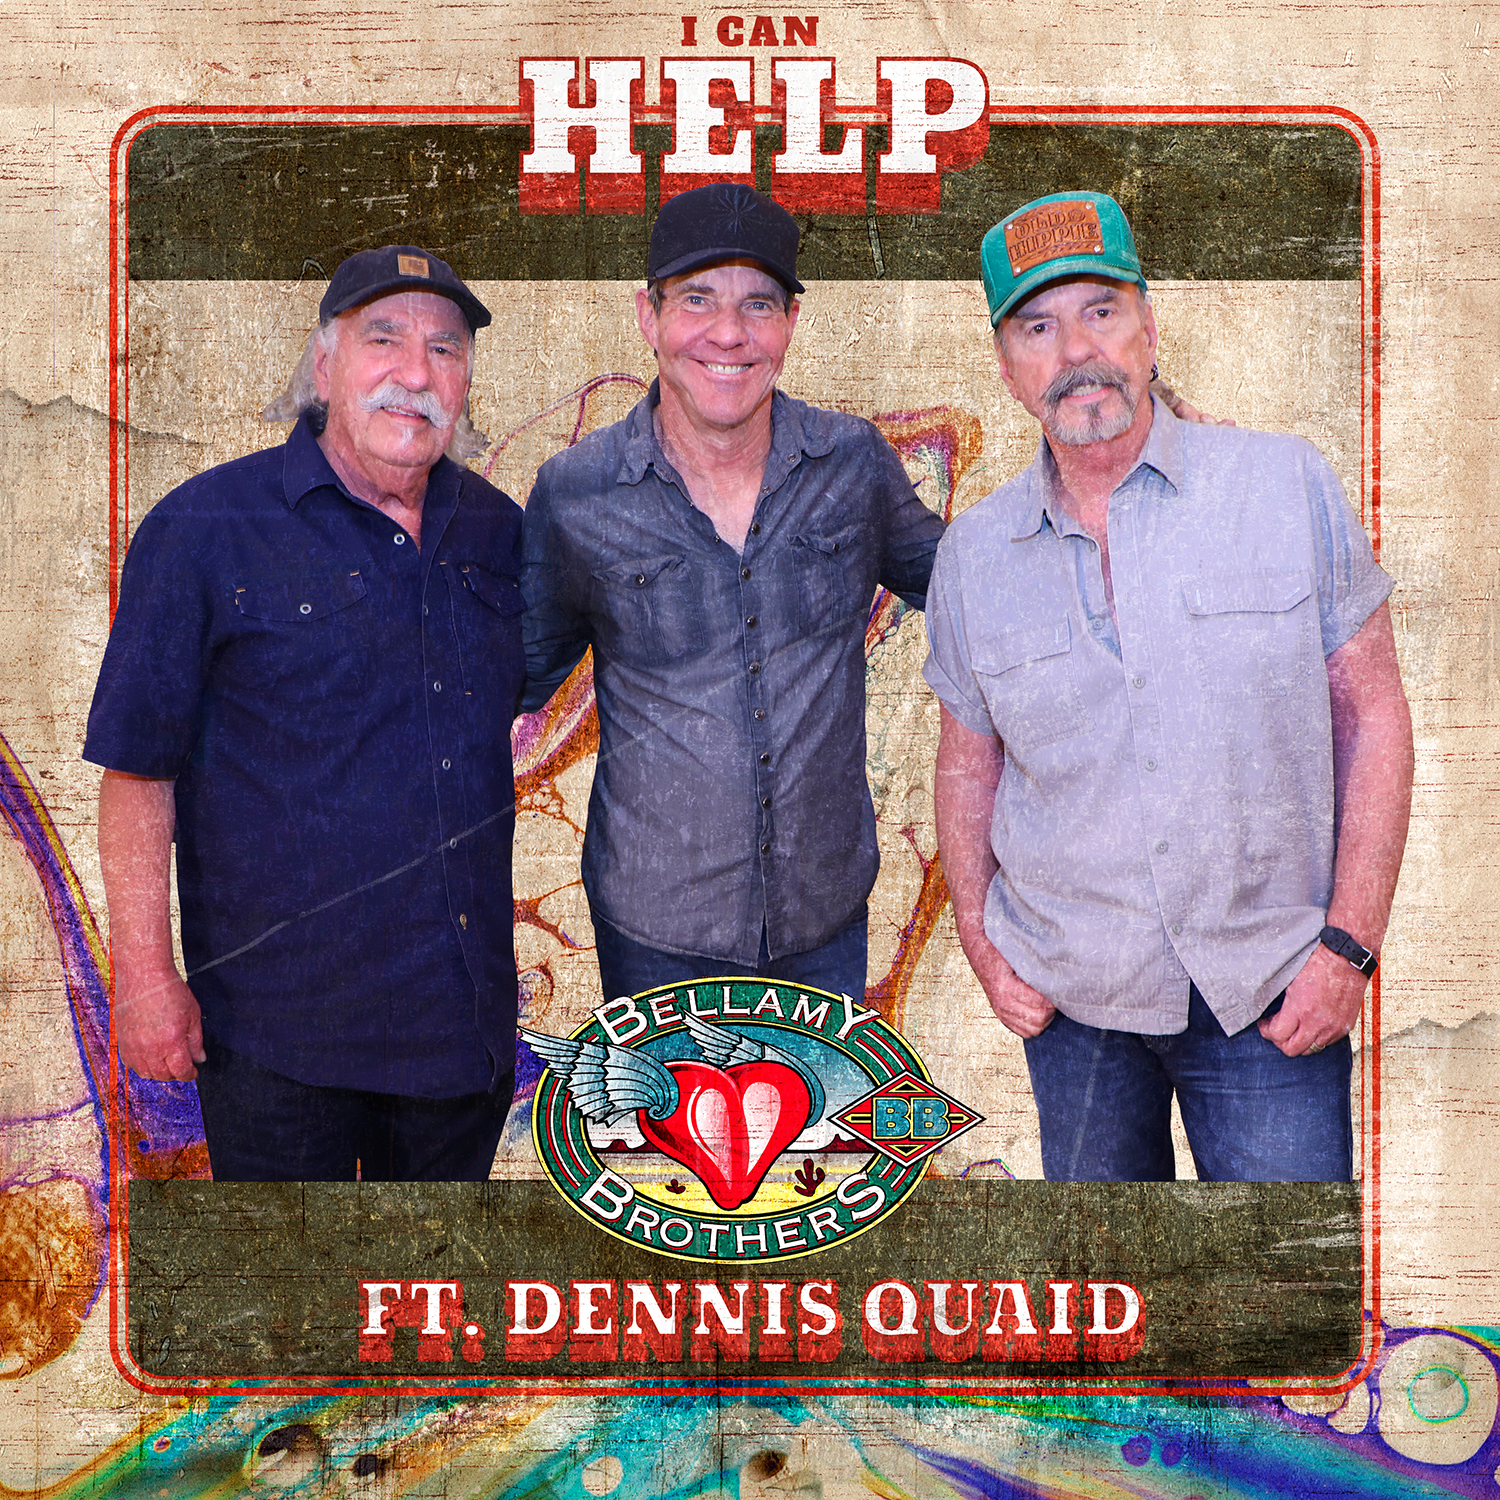 Dennis Quaid and the Bellamy Brothers